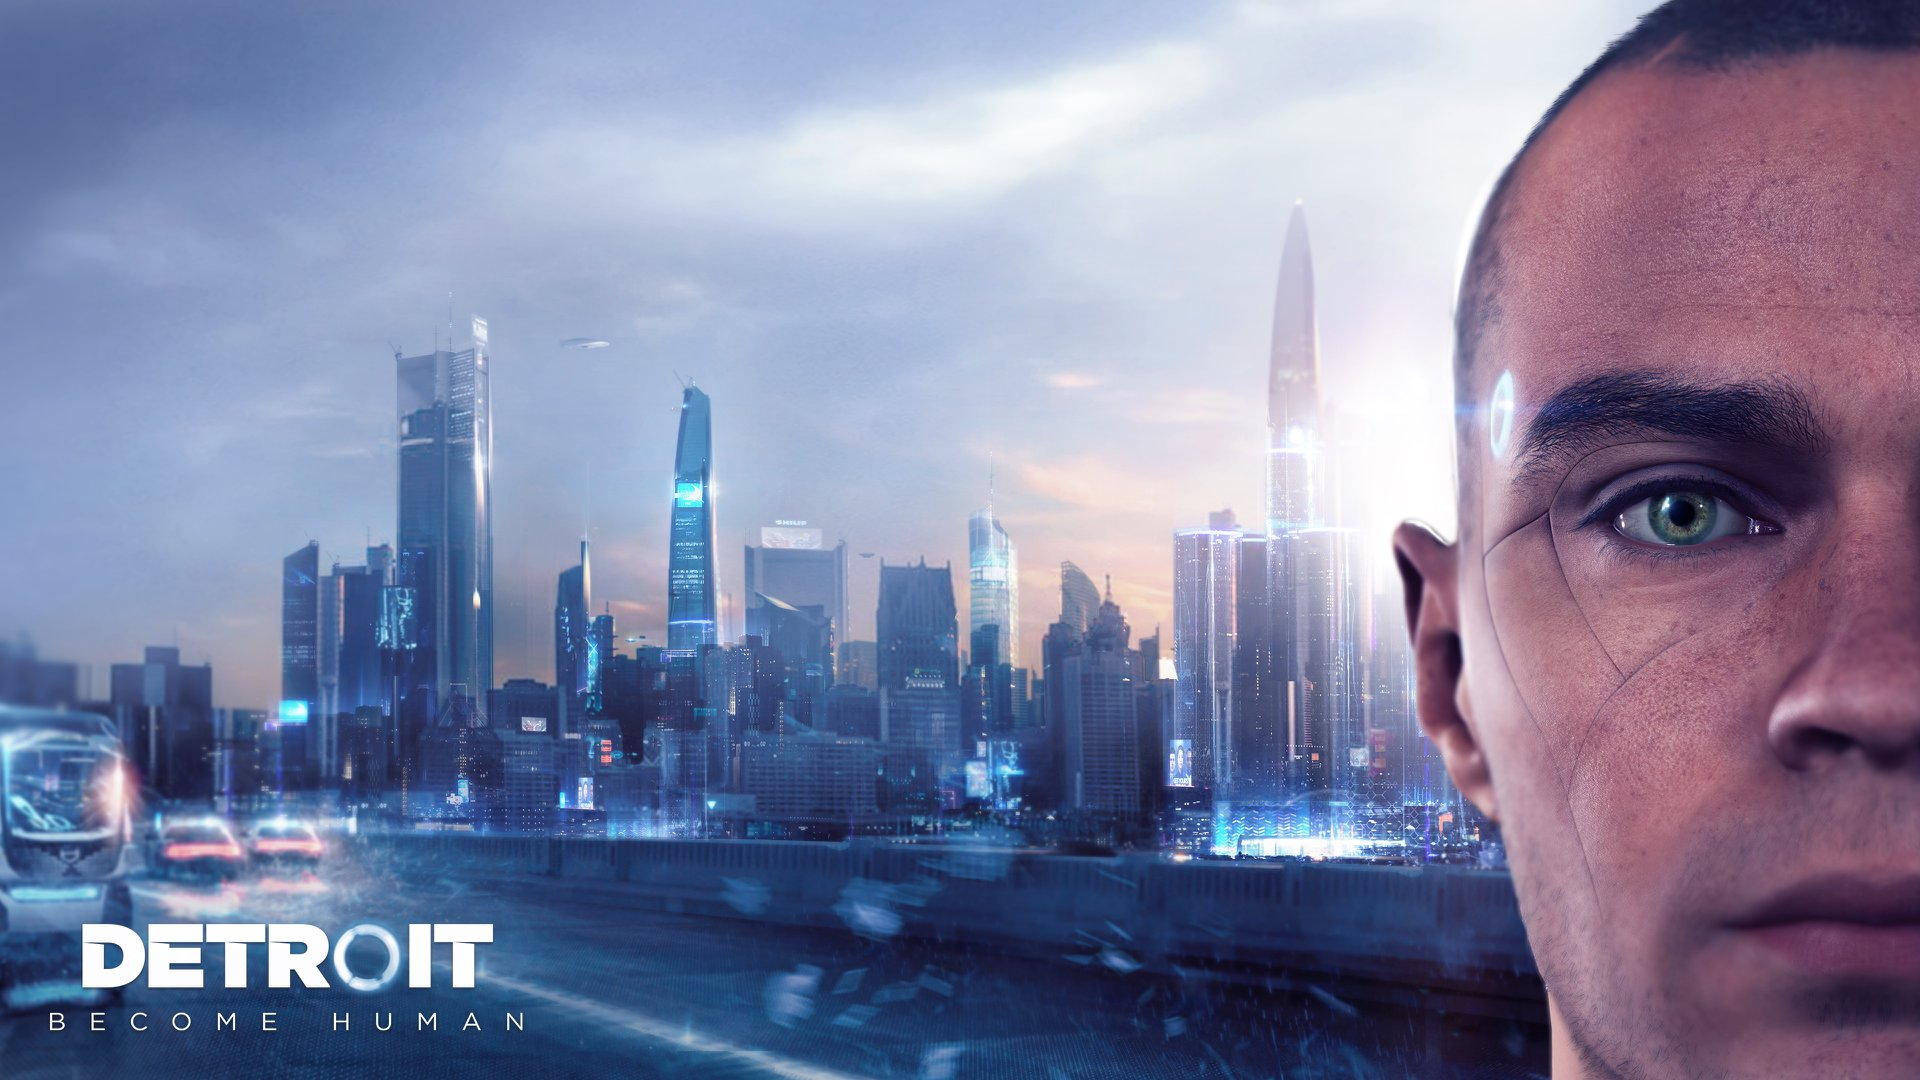 Markus Detroit Become Human Hd Games 4k Wallpapers Images Backgrounds Photos And Pictures